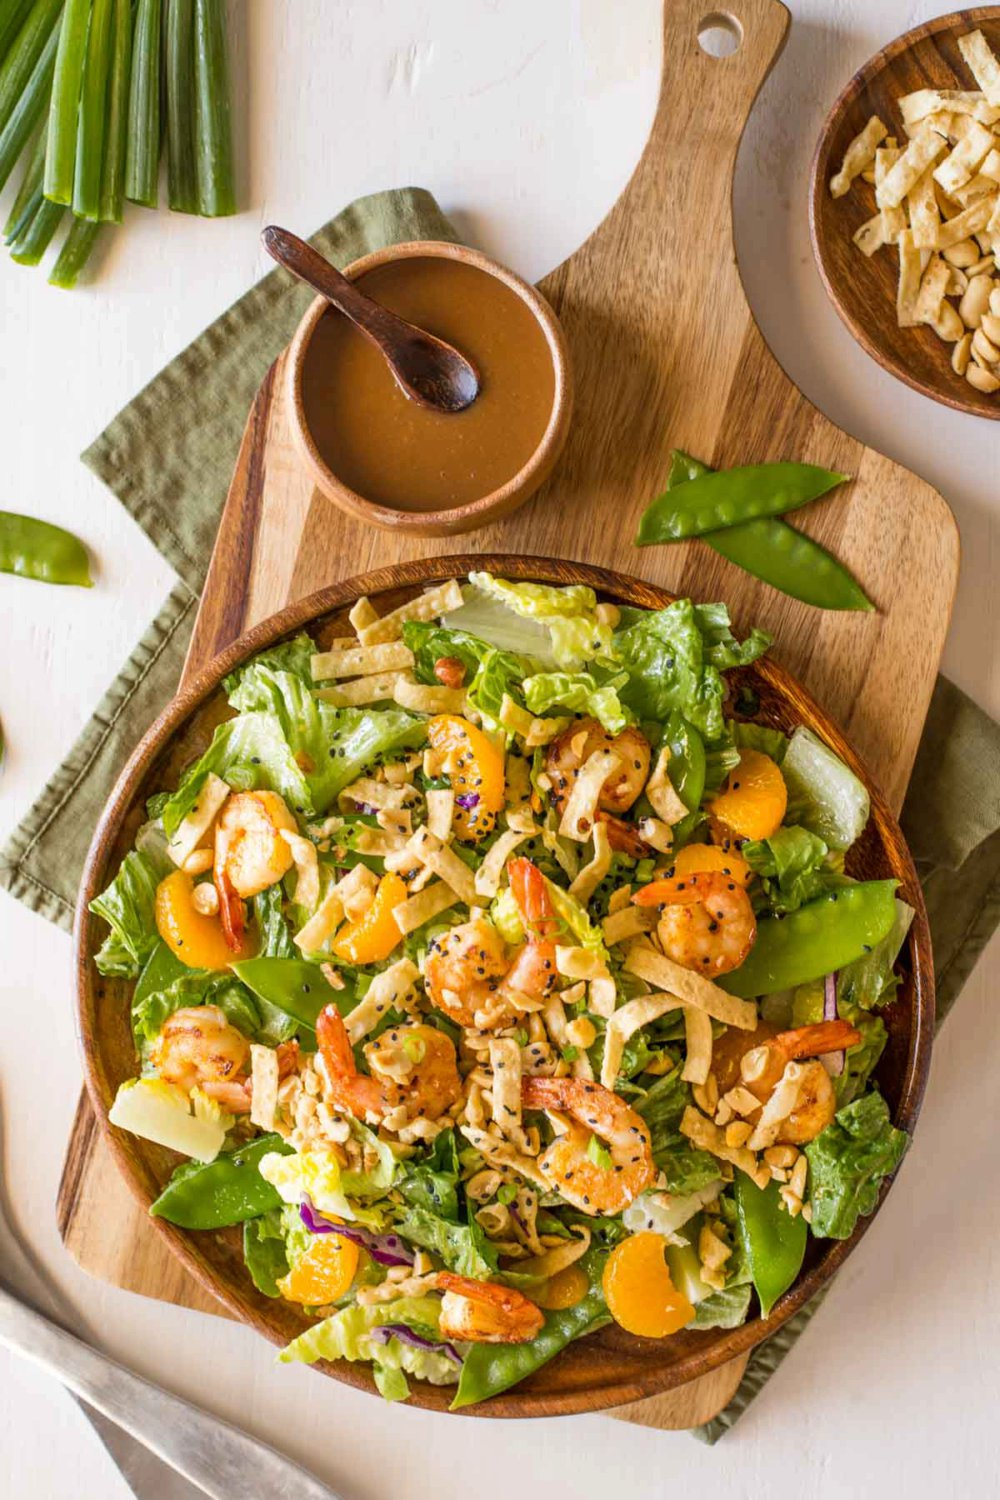 Shrimp Salad with Spicy Peanut Dressing